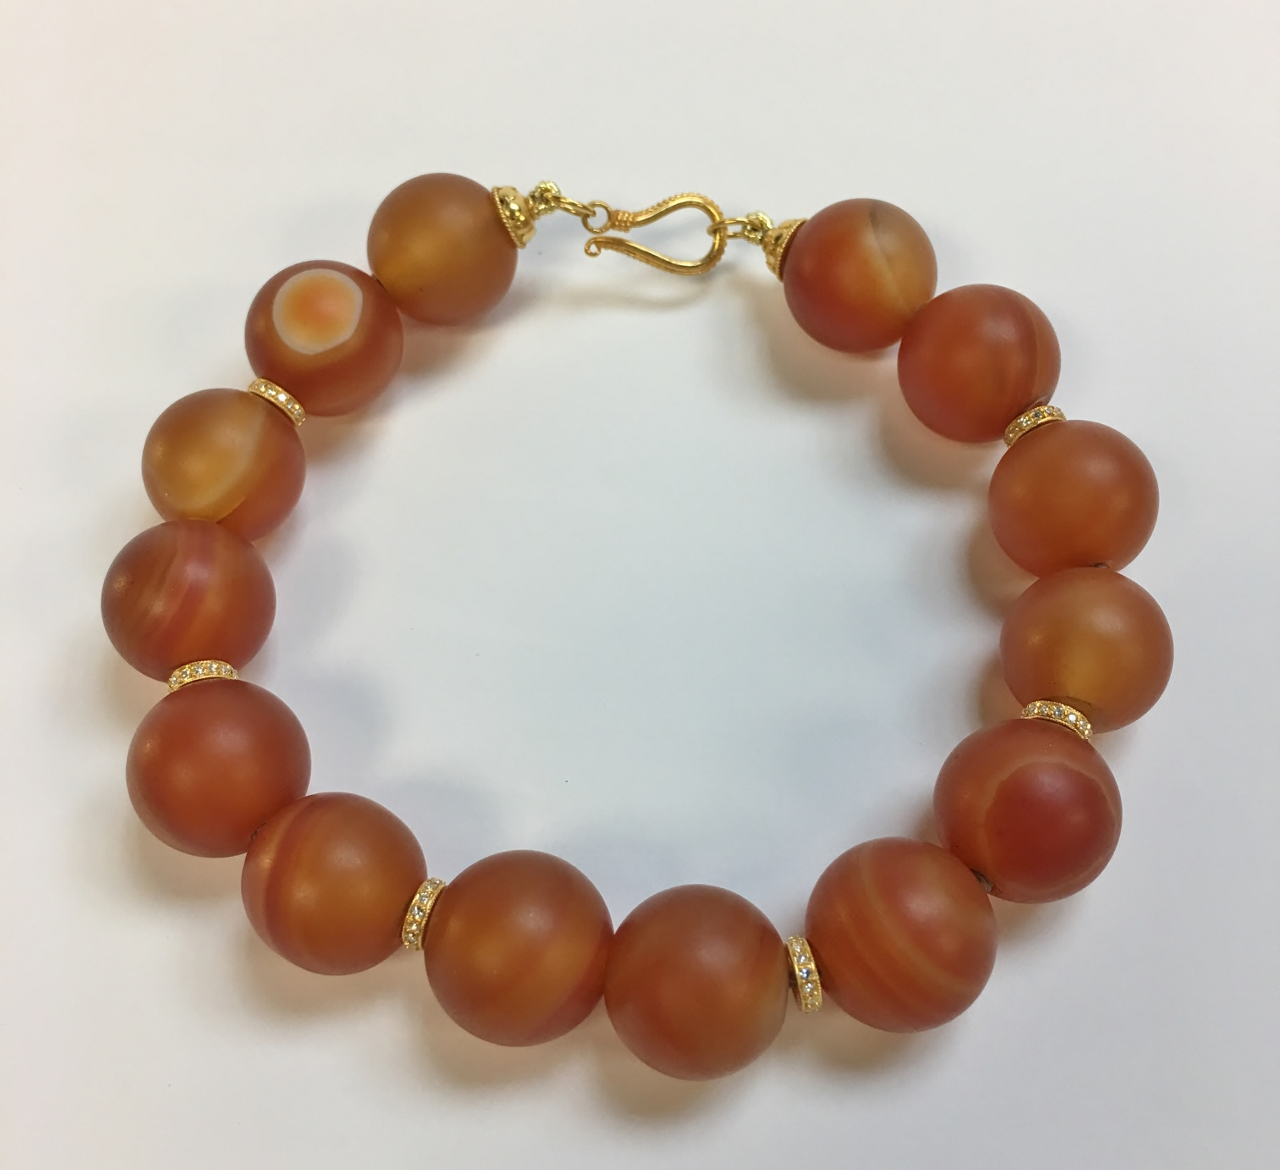 Carnelian Beads Bracelet with 18K Yellow Gold Clasp